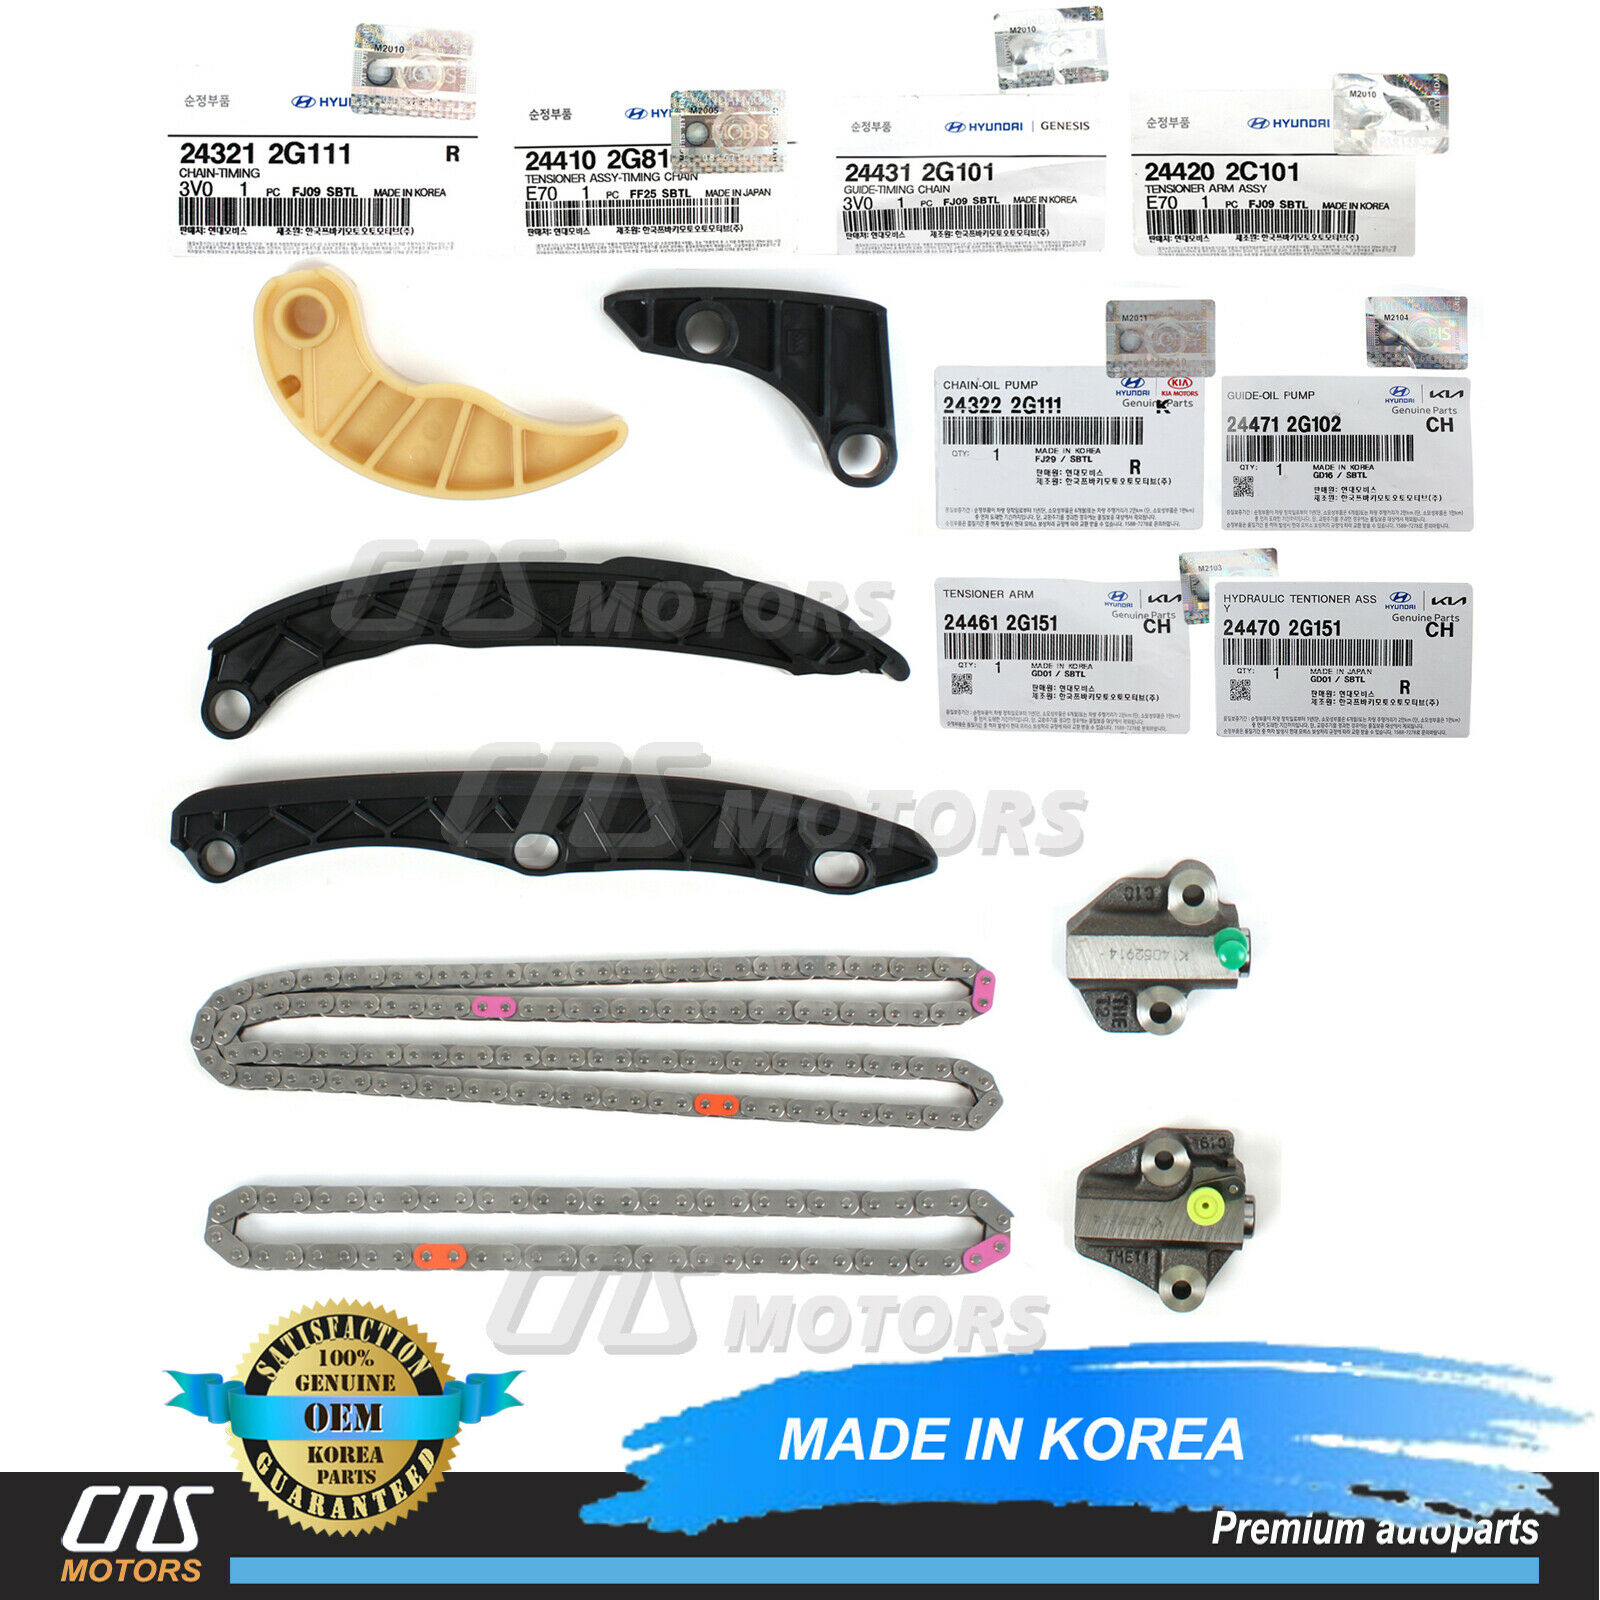 Genuine Full Timing Chain Kit W O Gears For 10 14 Sonata Optima 24l Belt Of 2007 Kia 1 8only Available